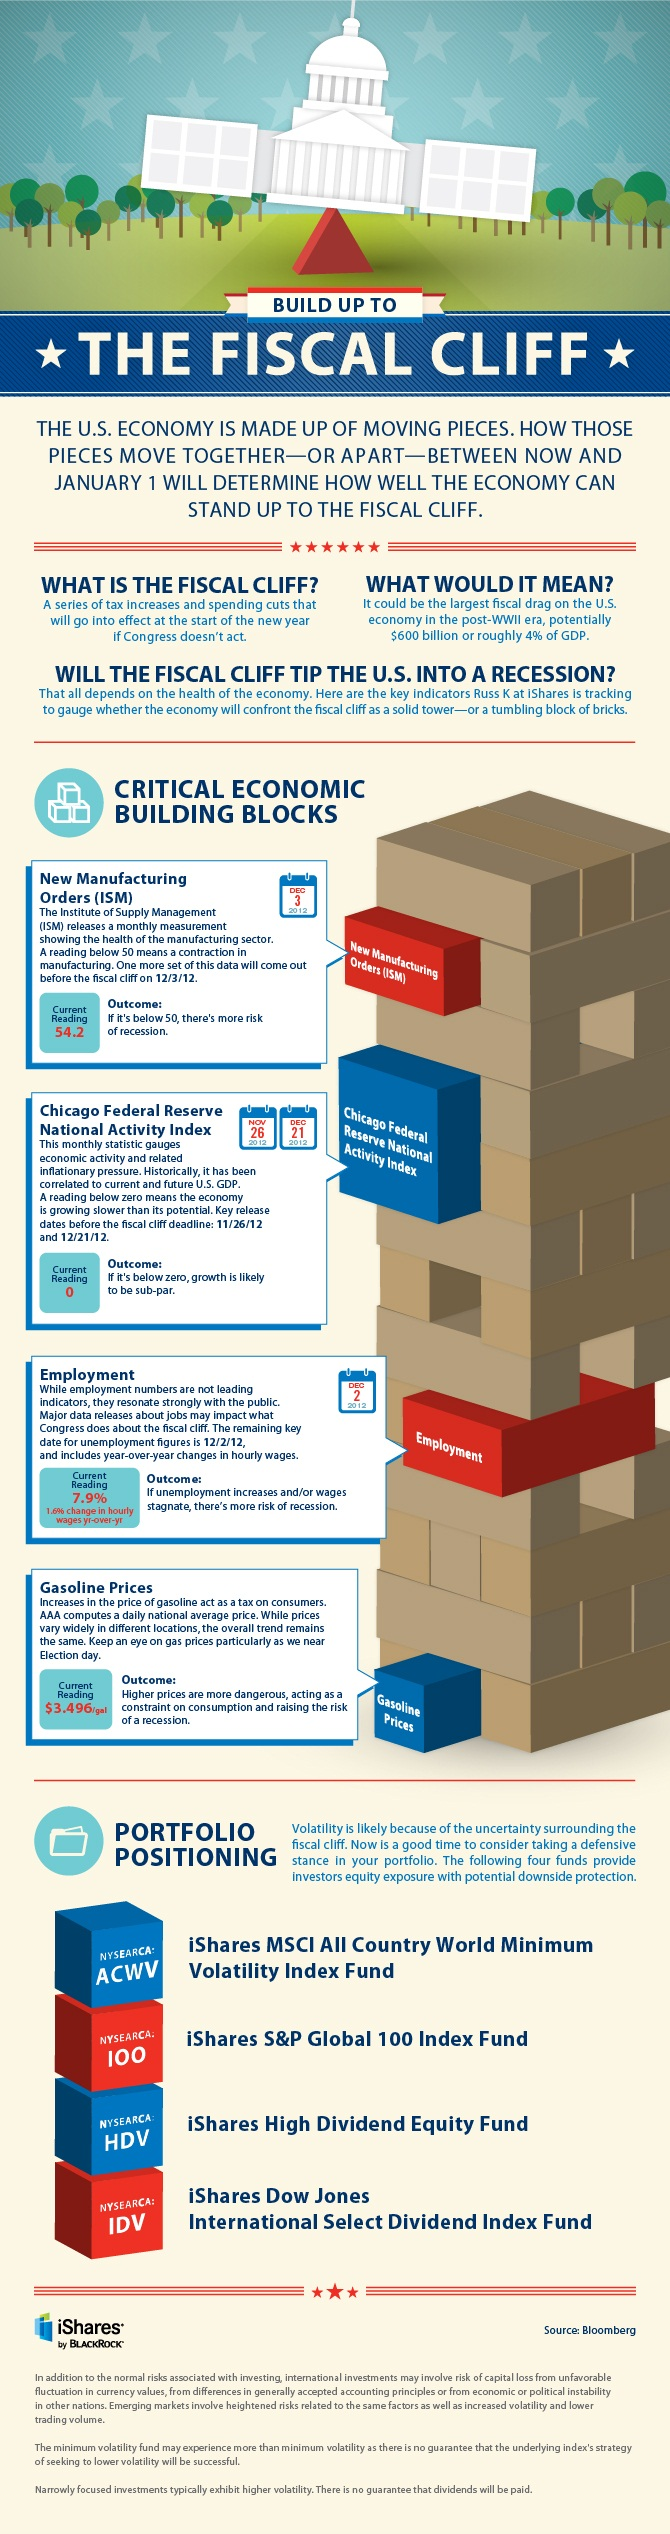 iSHares_FiscalCliff_Infographic_V10c-012